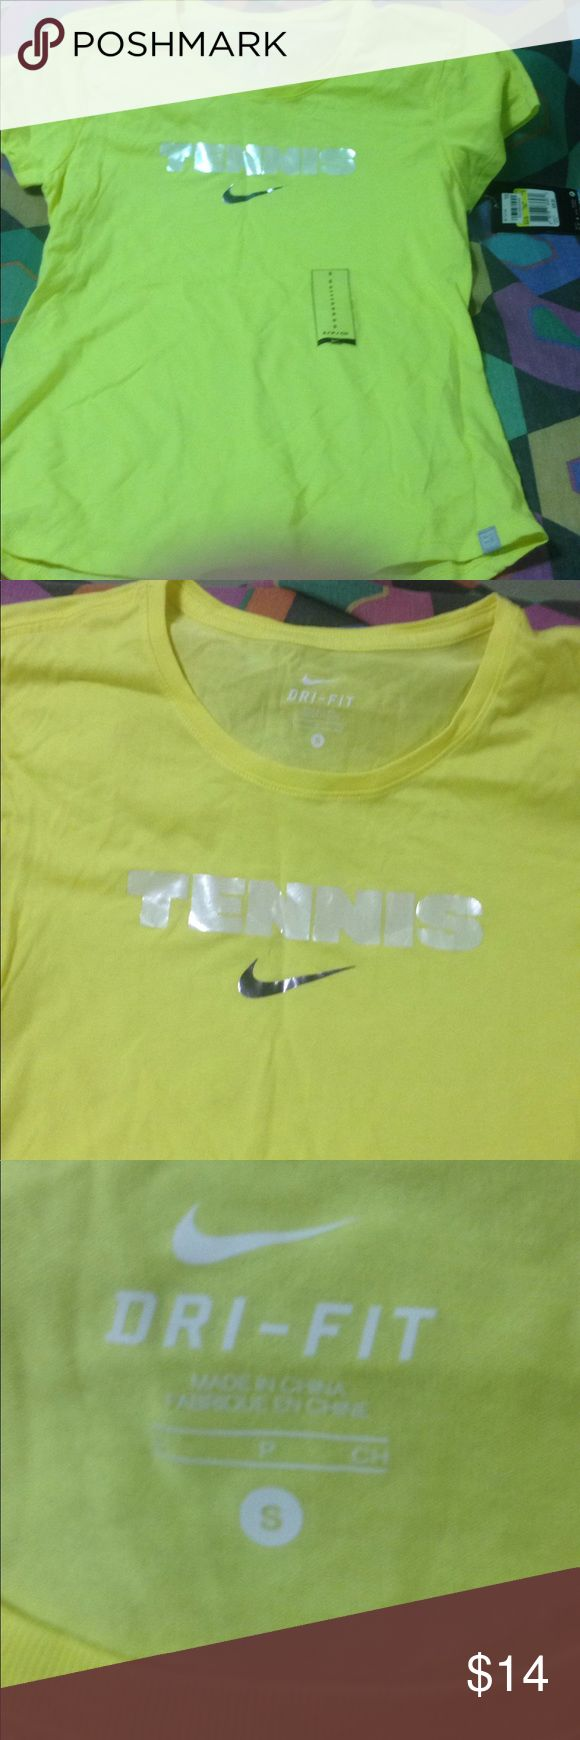 Women's new tee size small color Yellow Women's tee shirt sleeves sizes medium color Yellow brand Nike original tags Nike Tops Tees - Short Sleeve